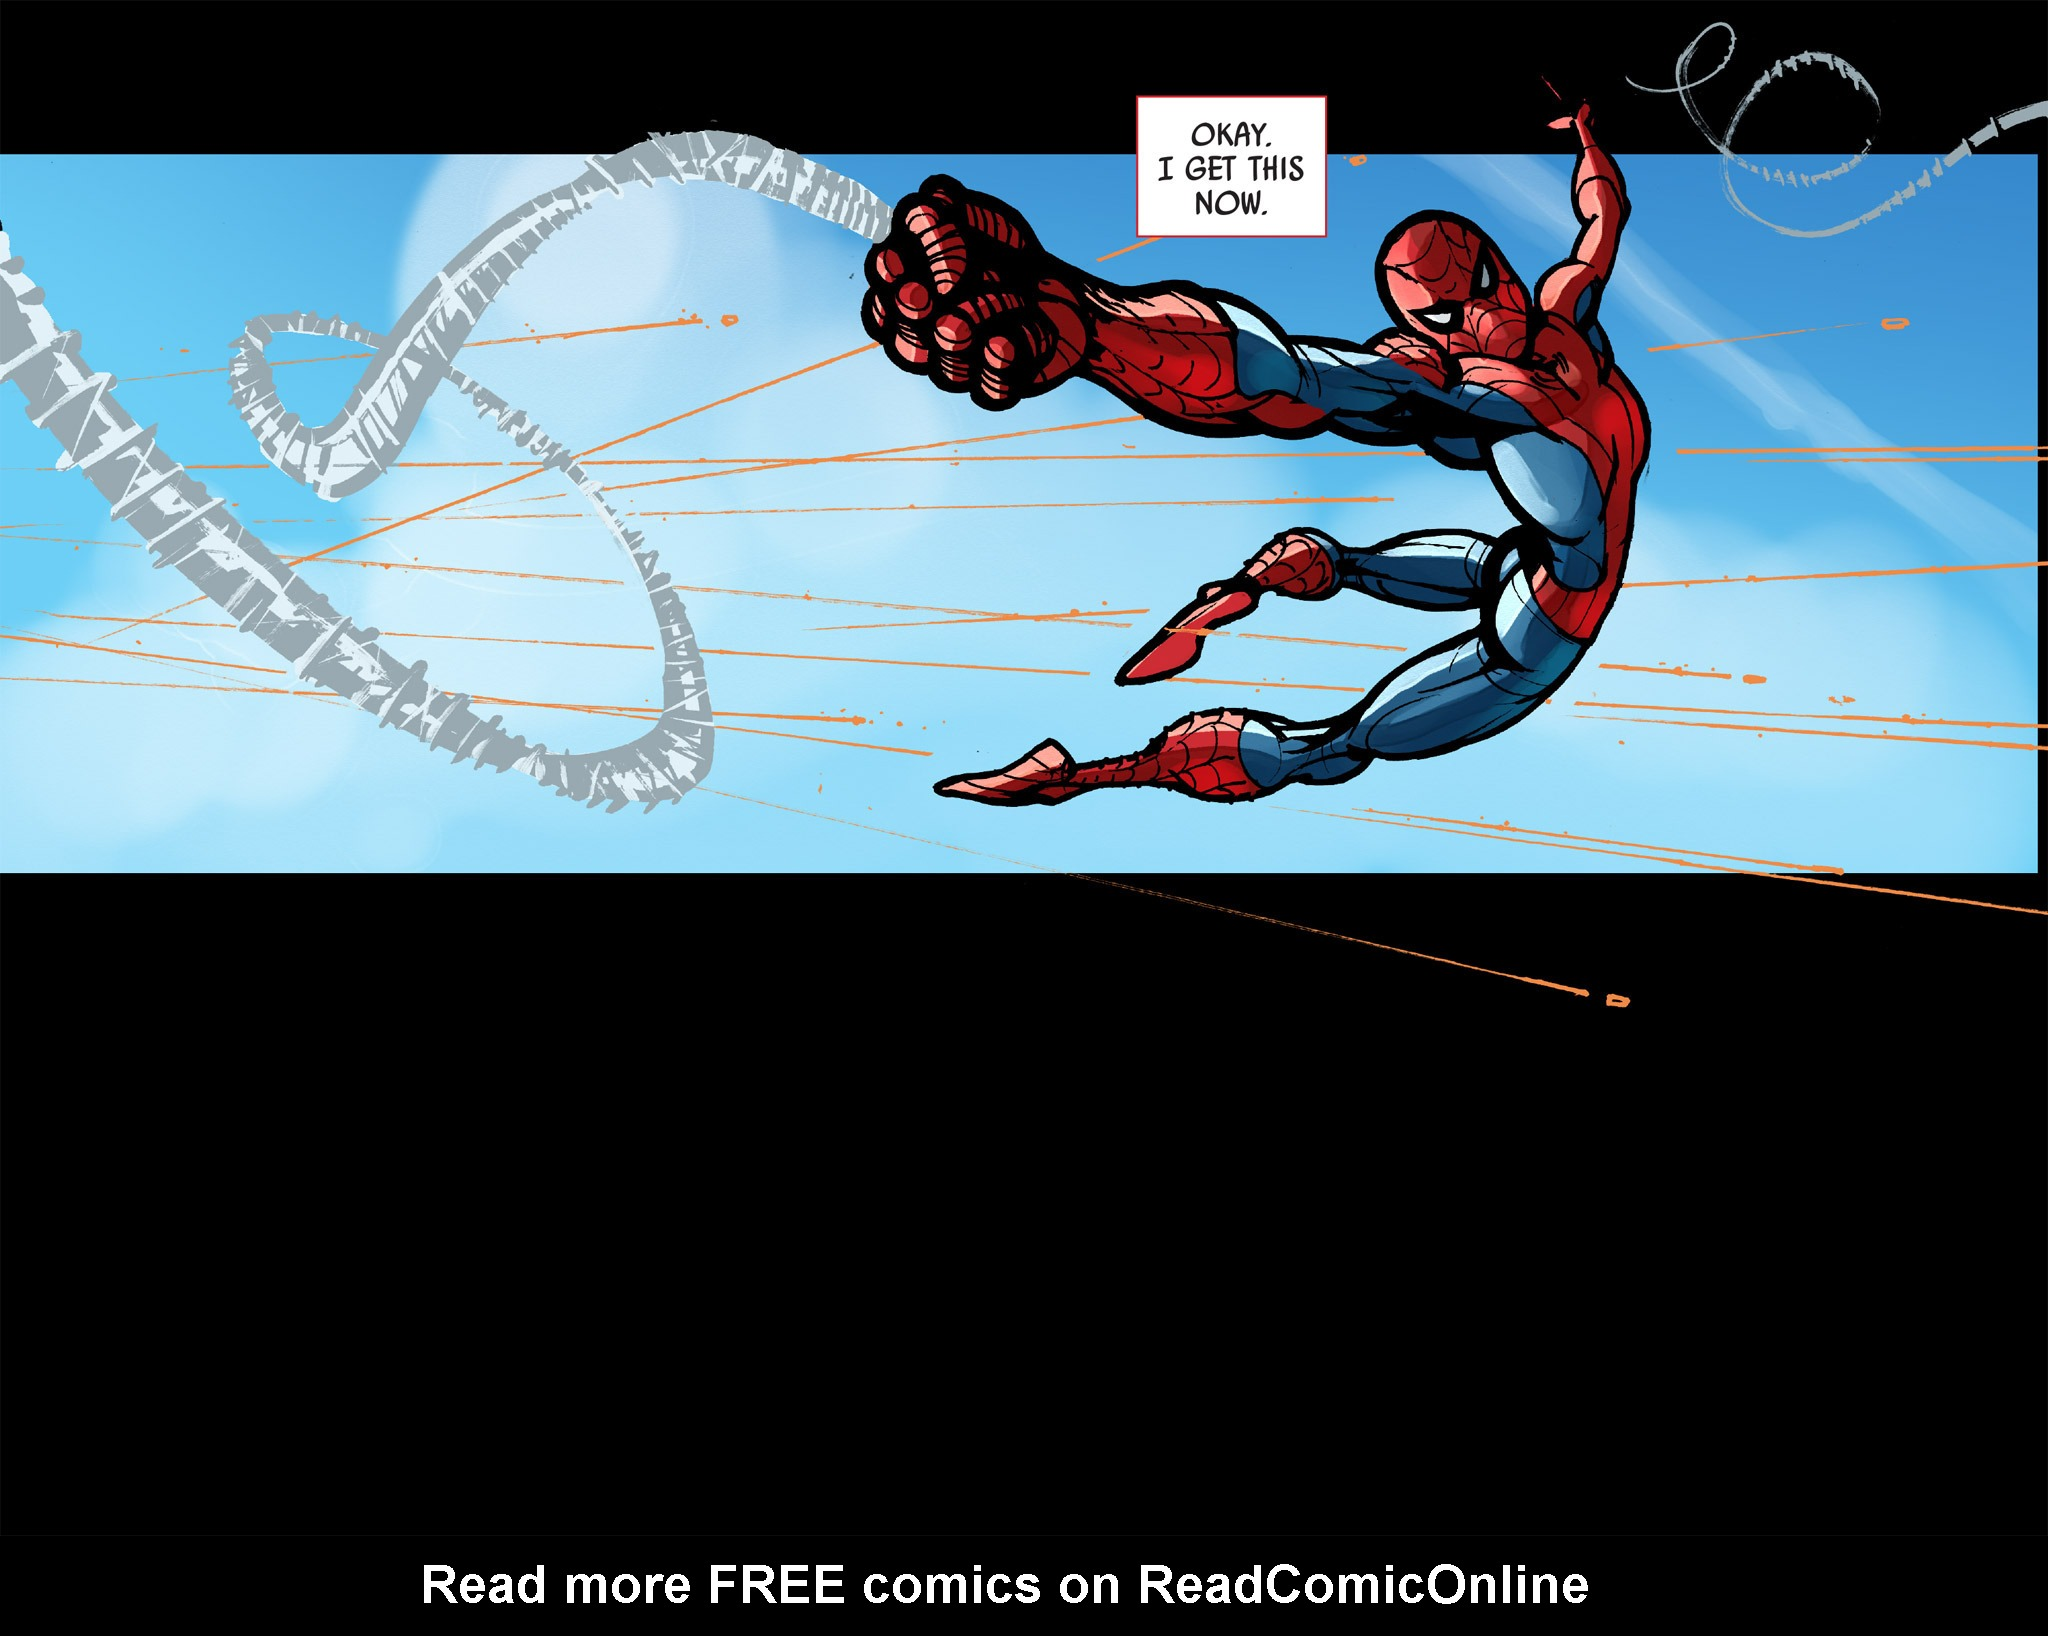 Read online Amazing Spider-Man: Who Am I? comic -  Issue # Full (Part 1) - 229